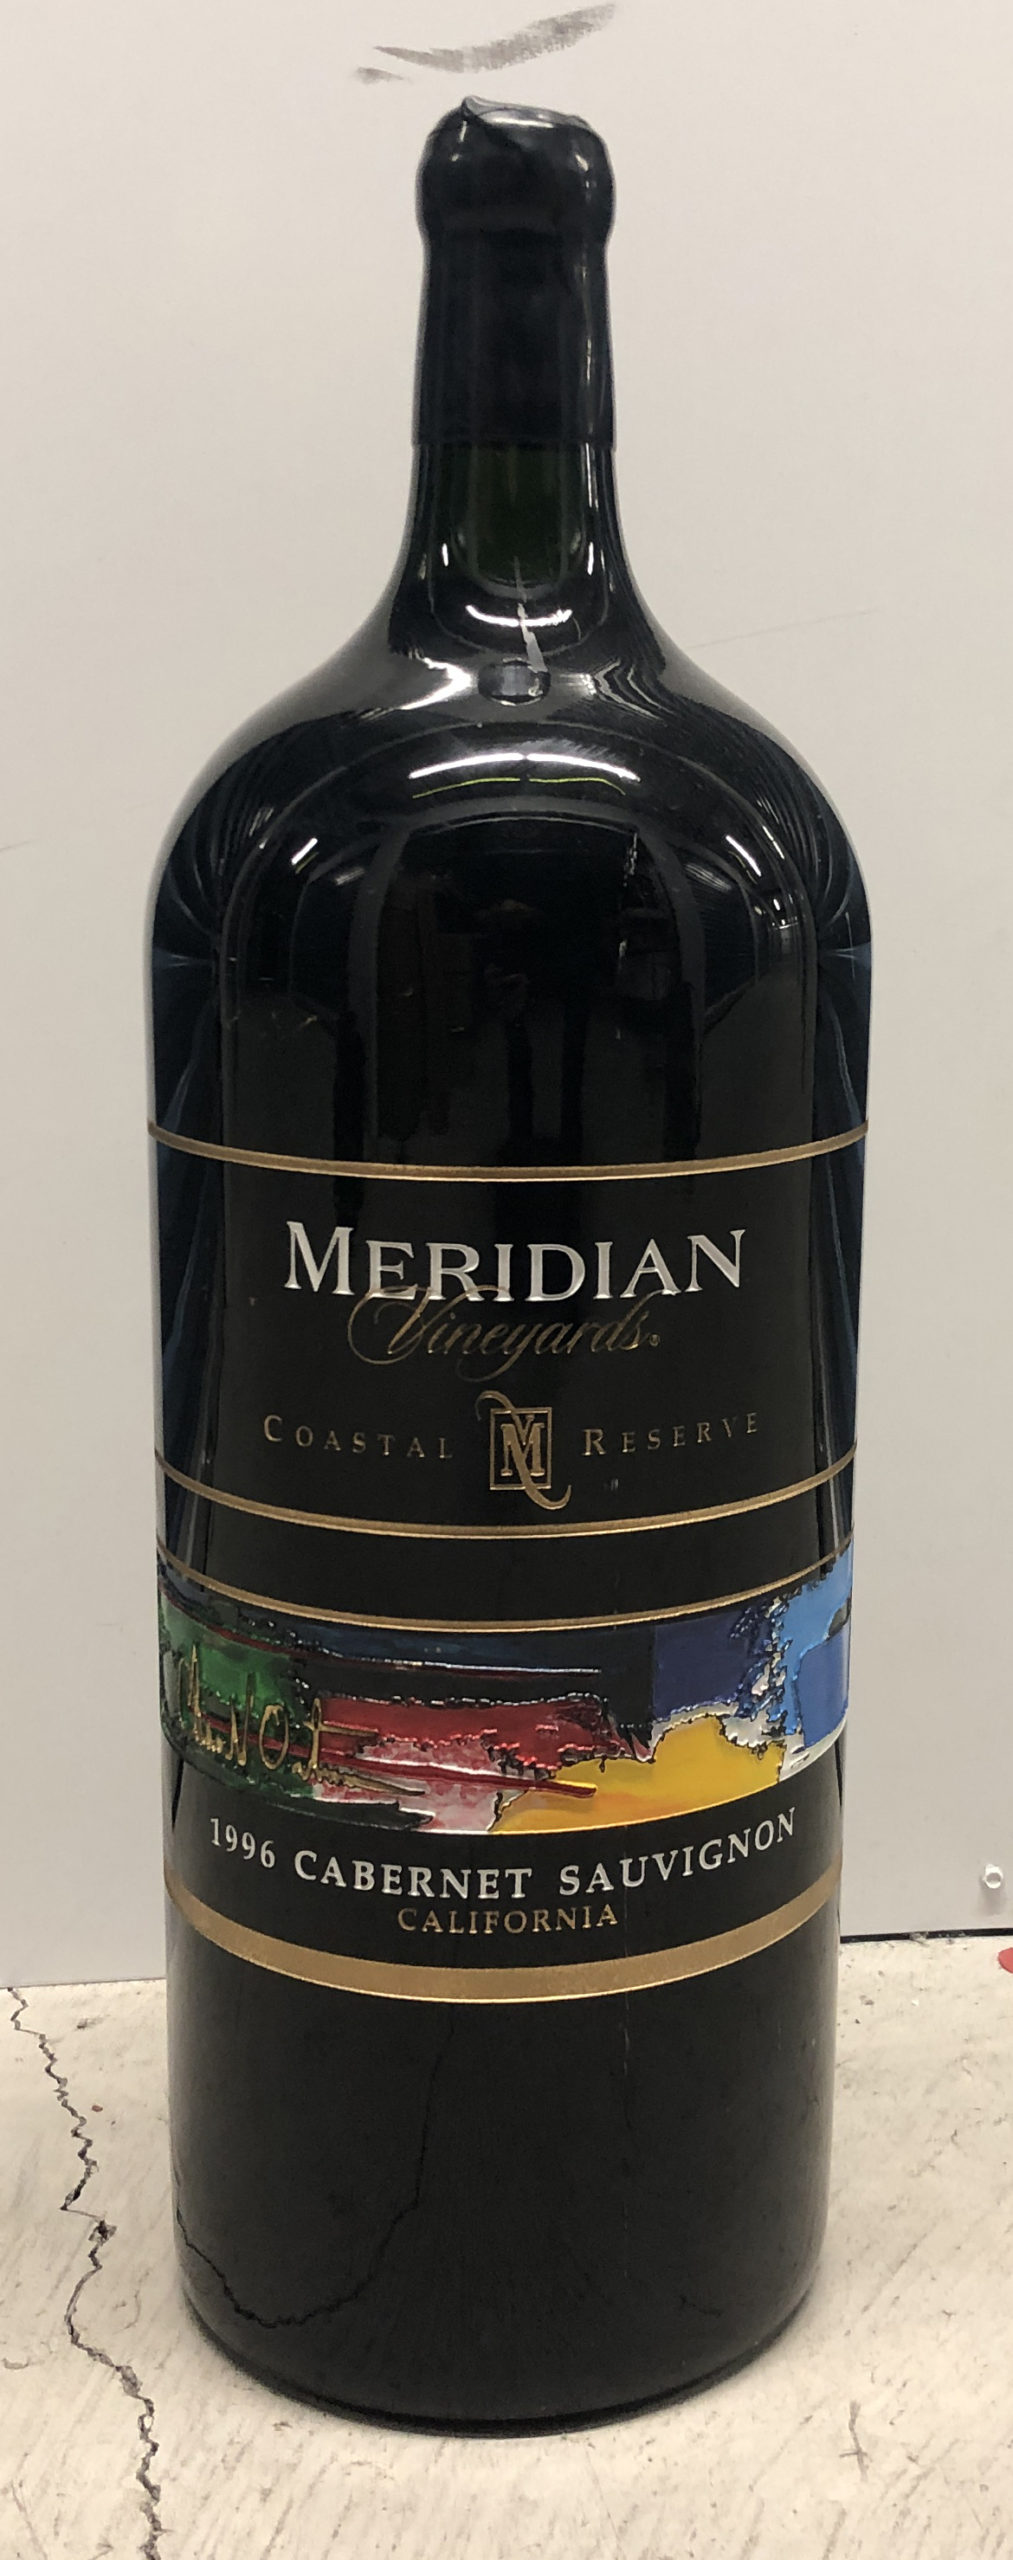 Meredian 1996 23 inches high